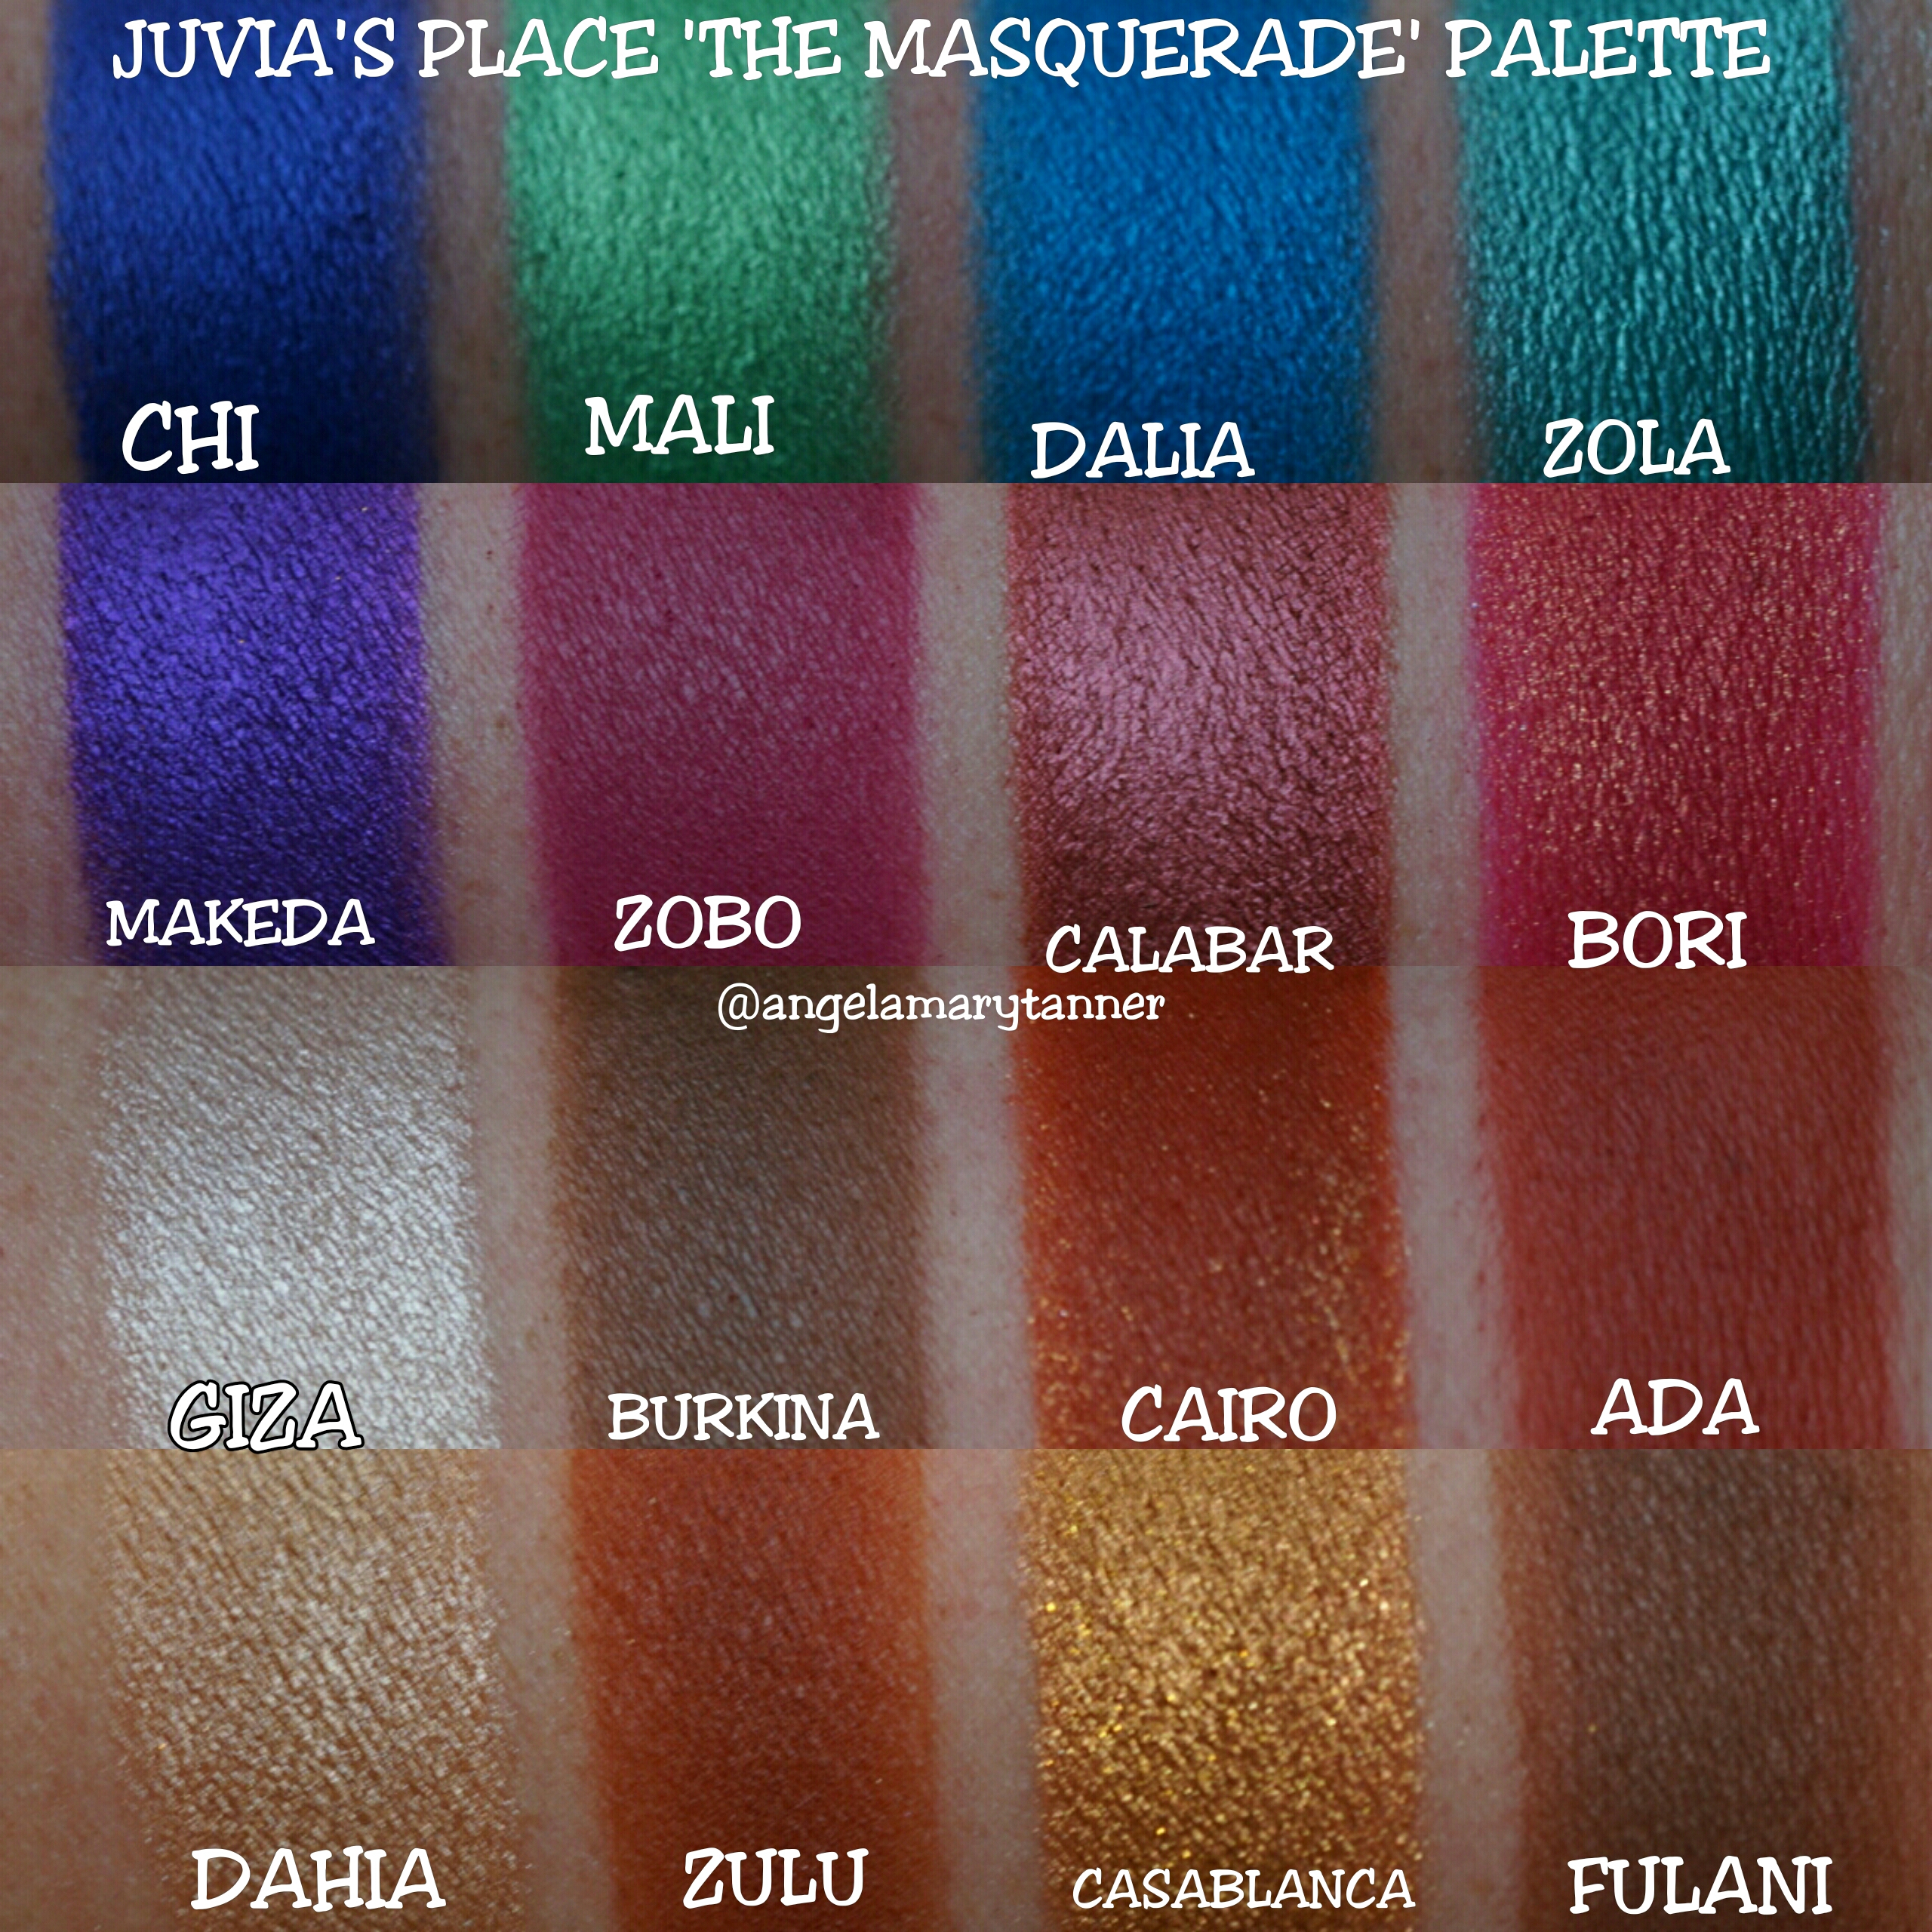 The Masquerade Mini Eyeshadow Palette by Juvia's Place #3